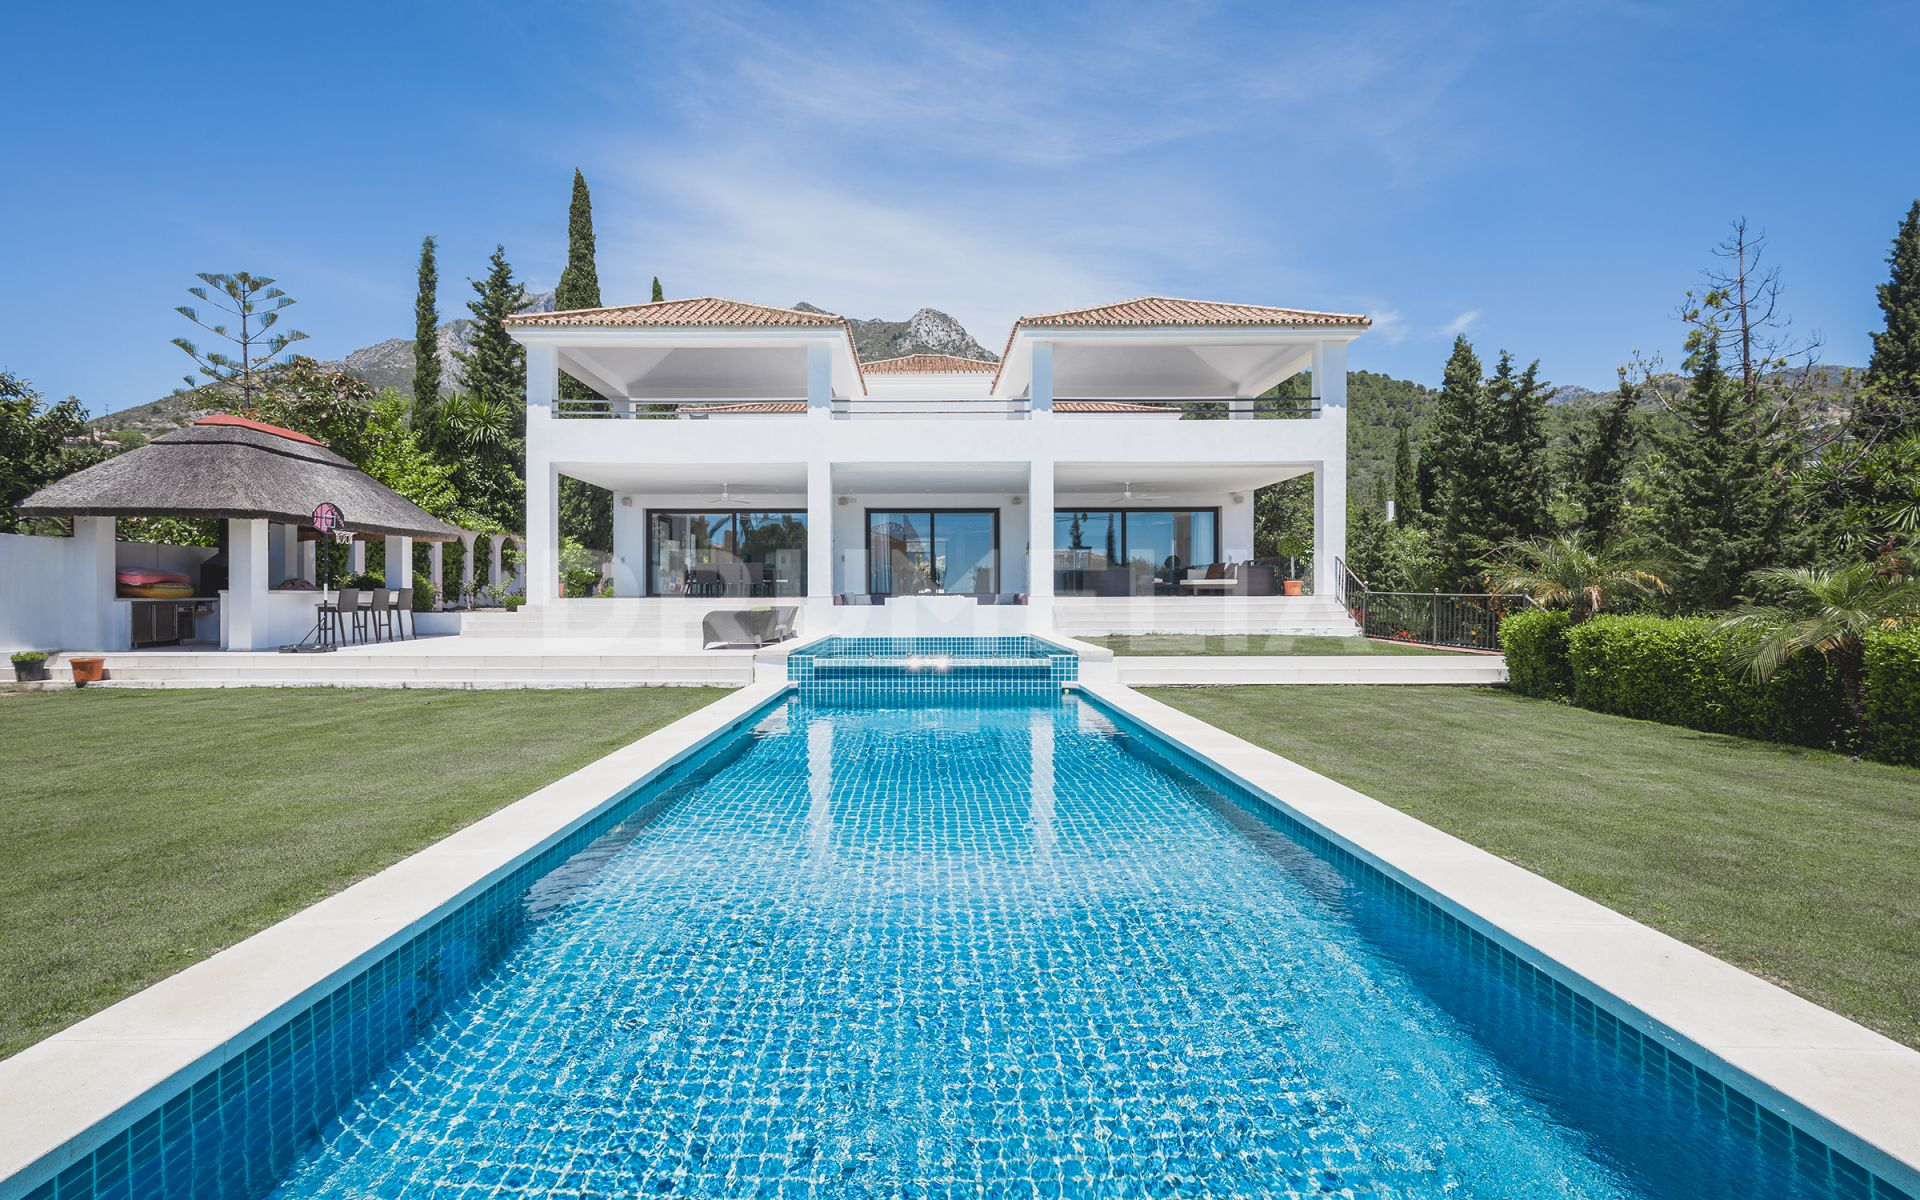 Marvellous Renovated Modern Mediterranean Luxury Villa In Sierra Blanca